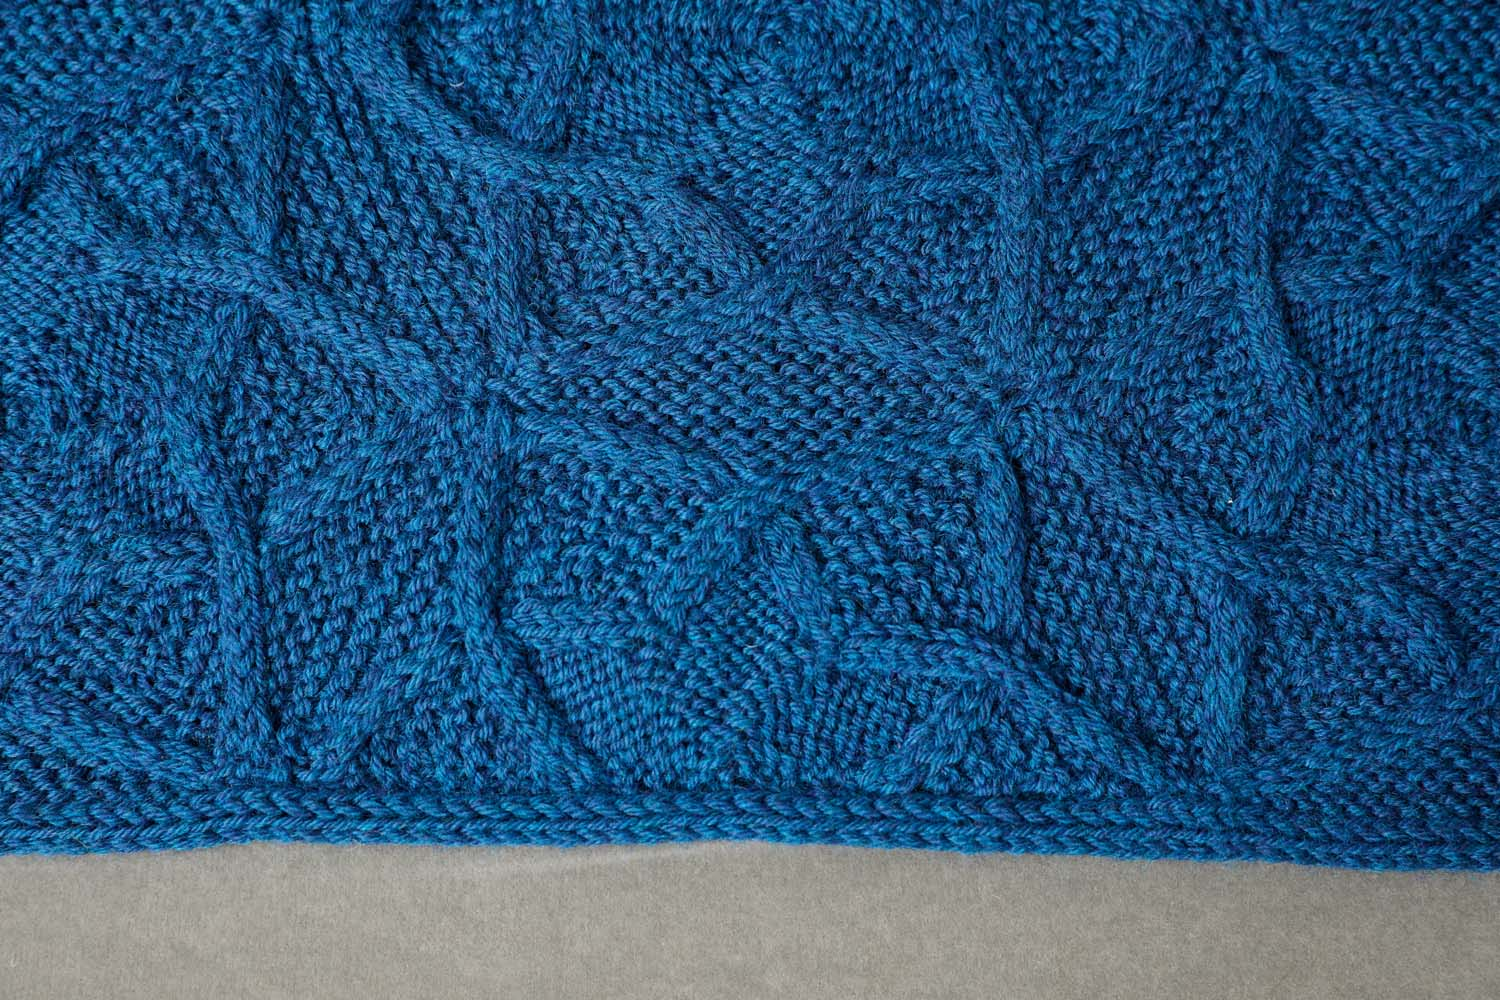 The half-hexagons at the edges are knitted on to the assembled blanket or cowl. Image © Jesse Wild.